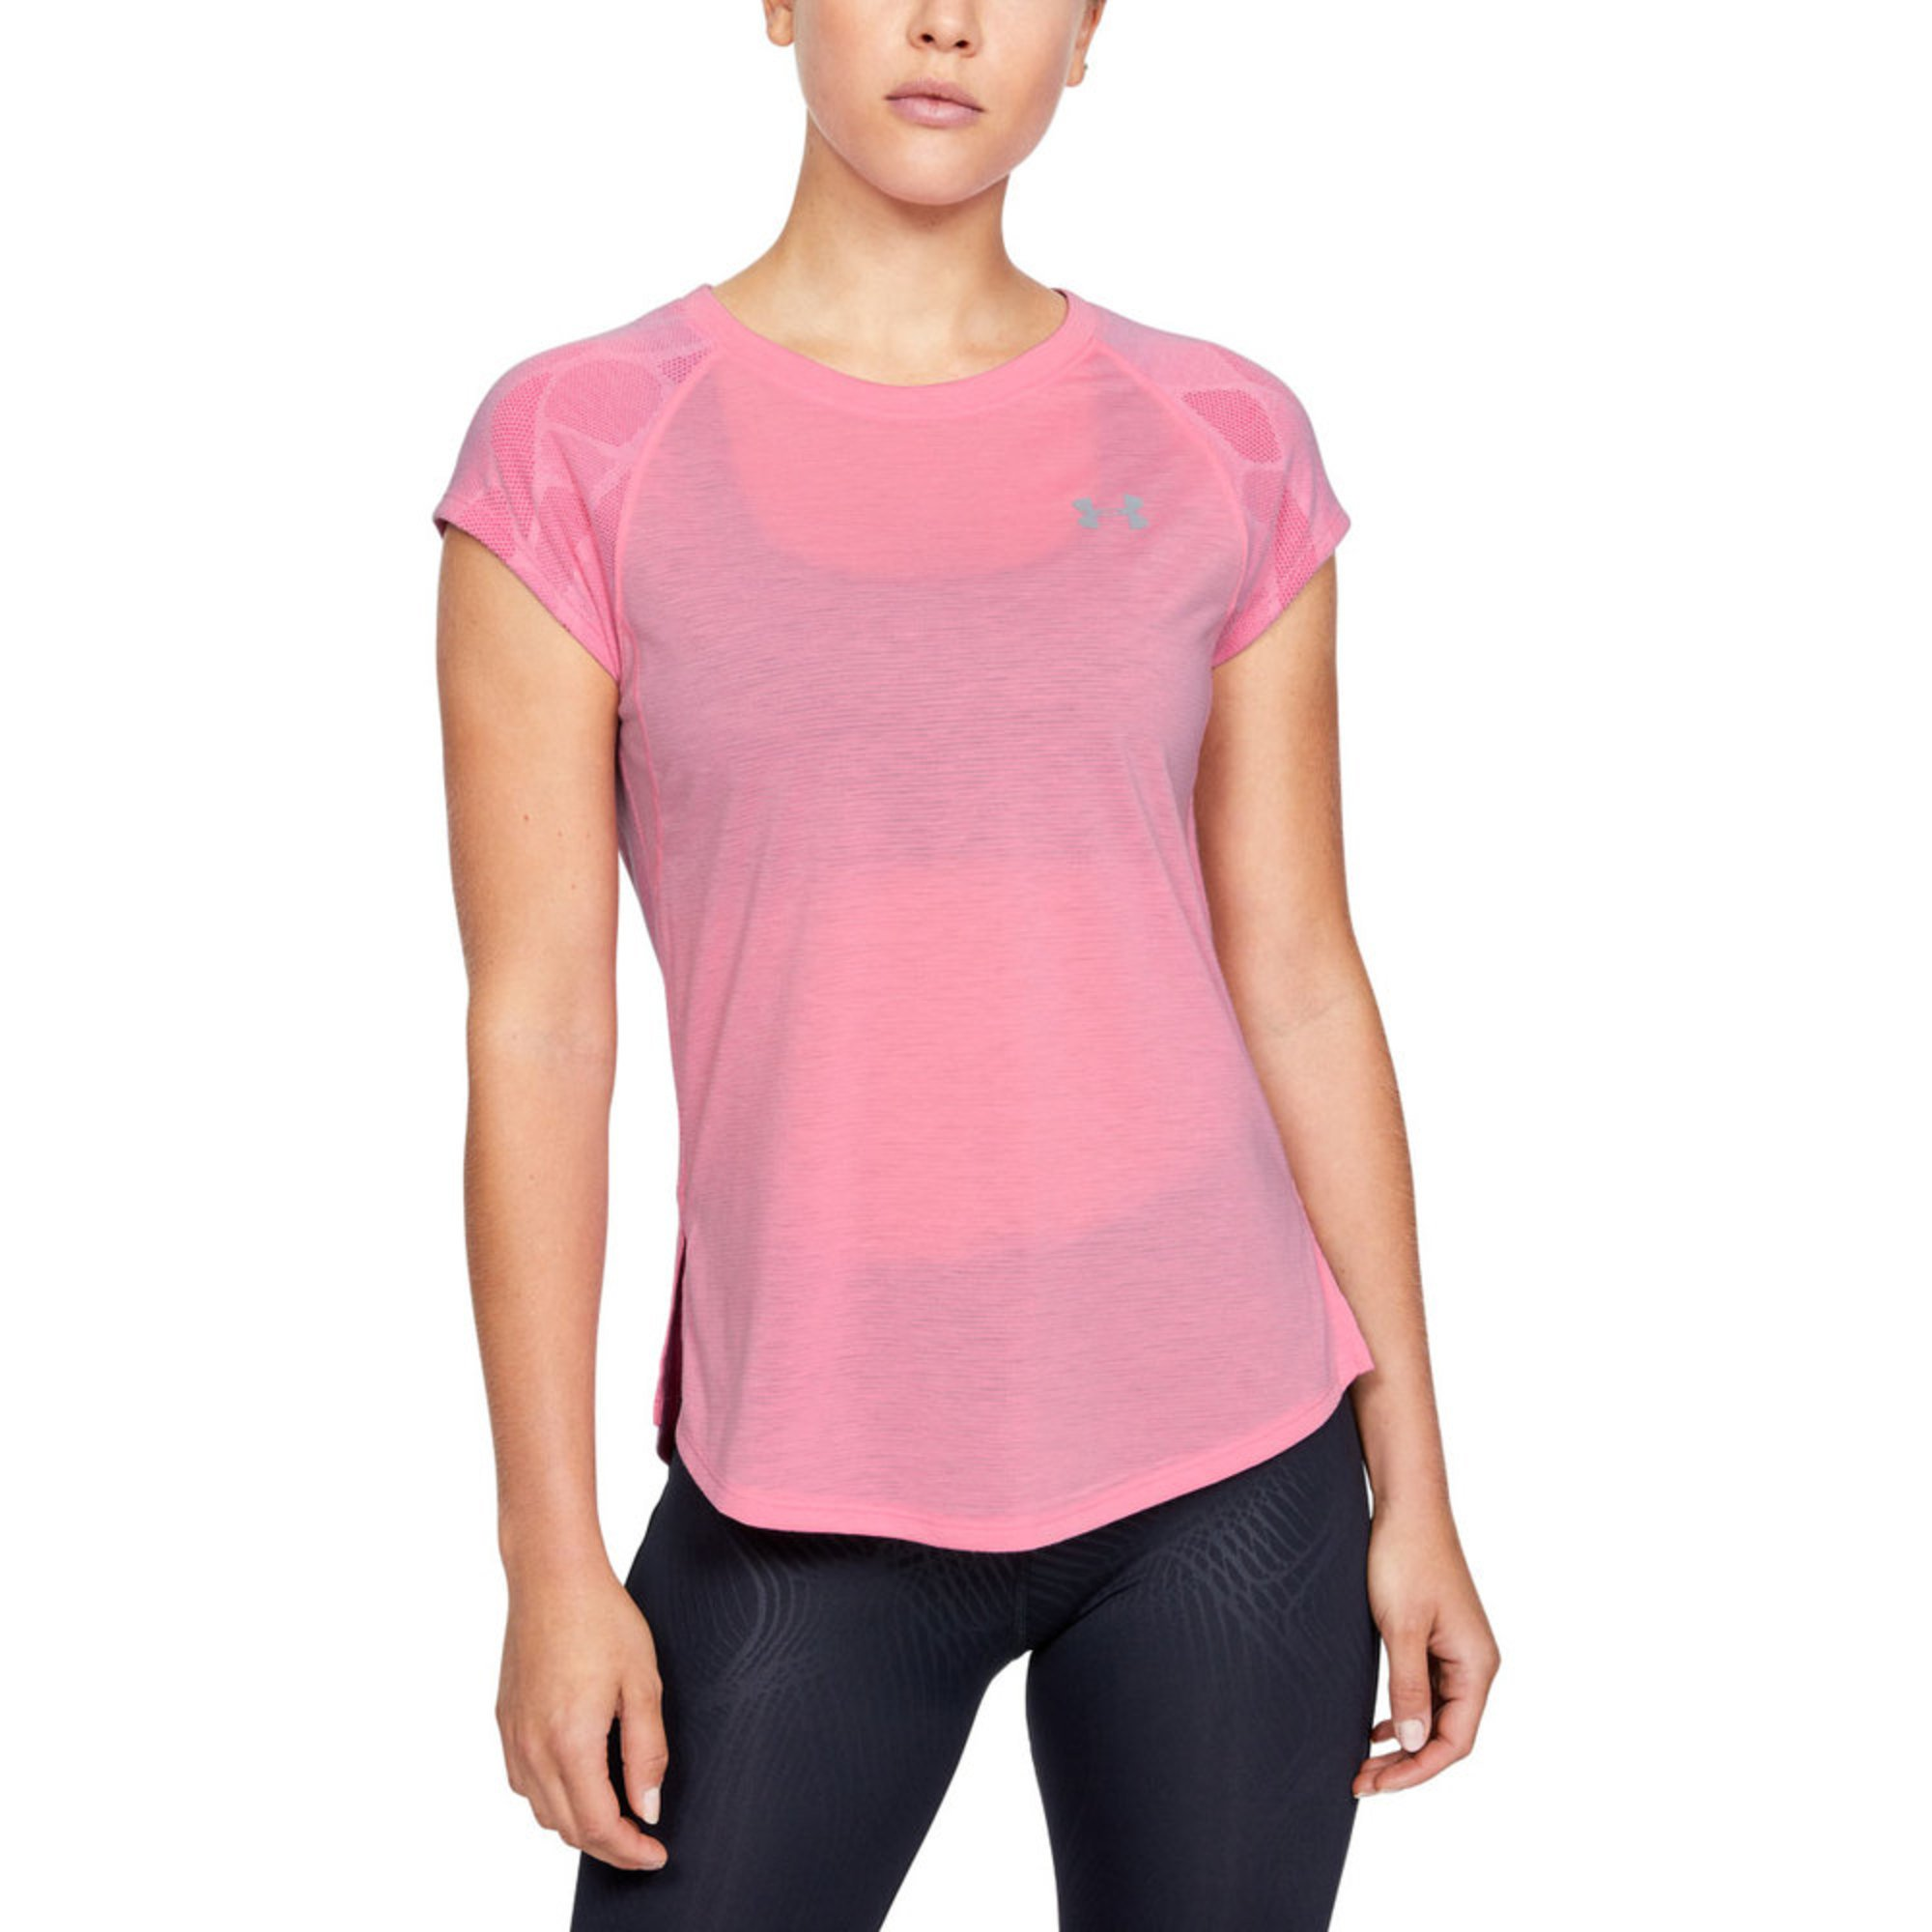 Under Armour Women's Streaker 2.0 Shift | Active Tees & Tops | Apparel -  Shop Your Navy Exchange - Official Site